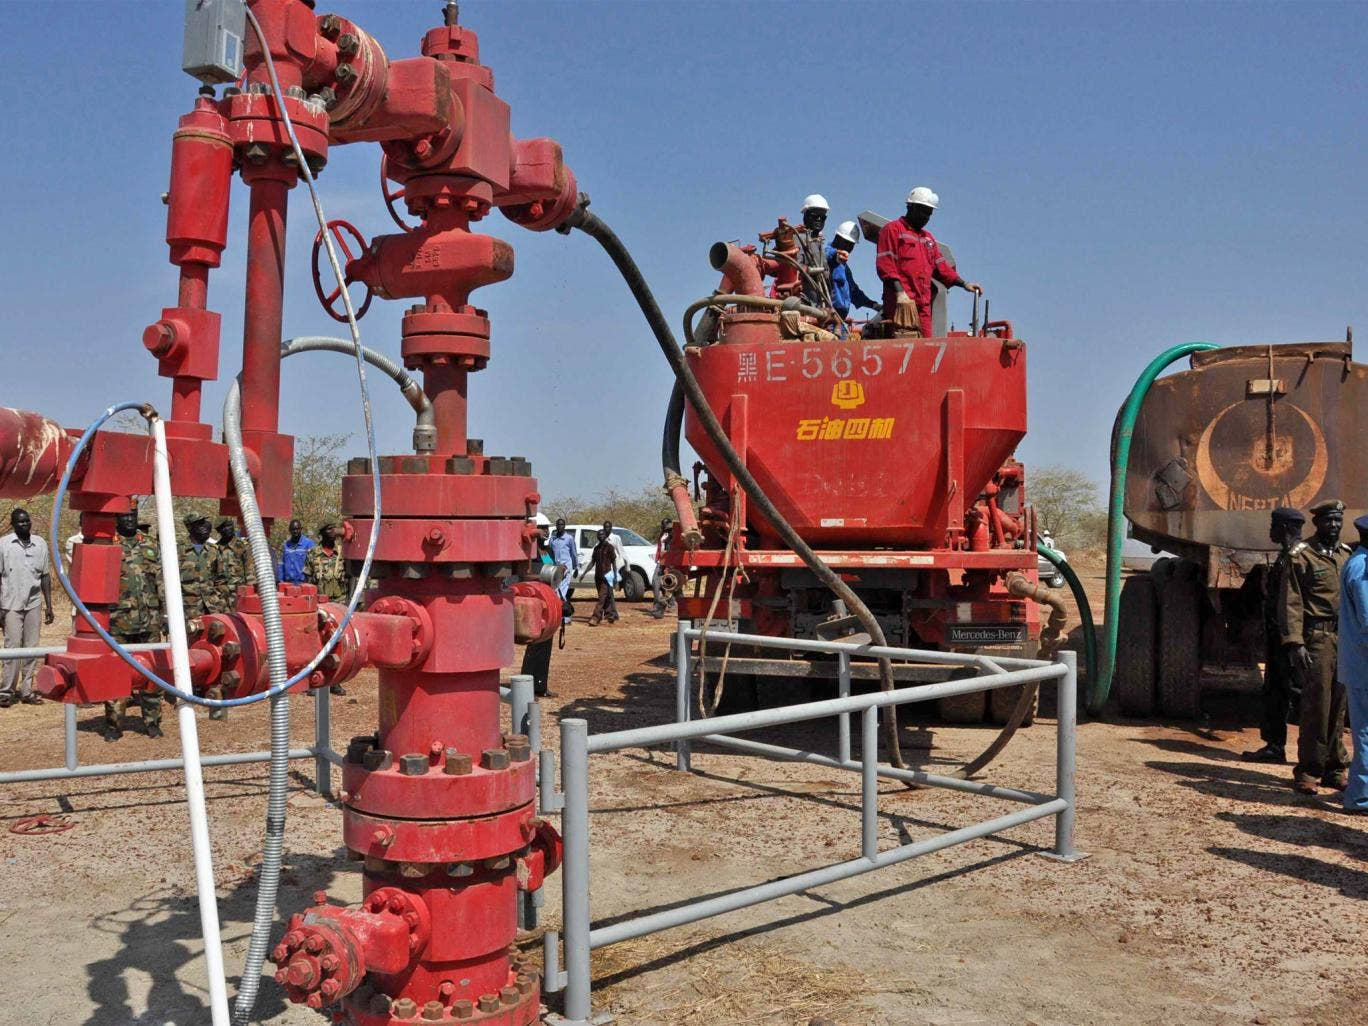 Some oil operators in South Sudan have shut down and evacuated workers